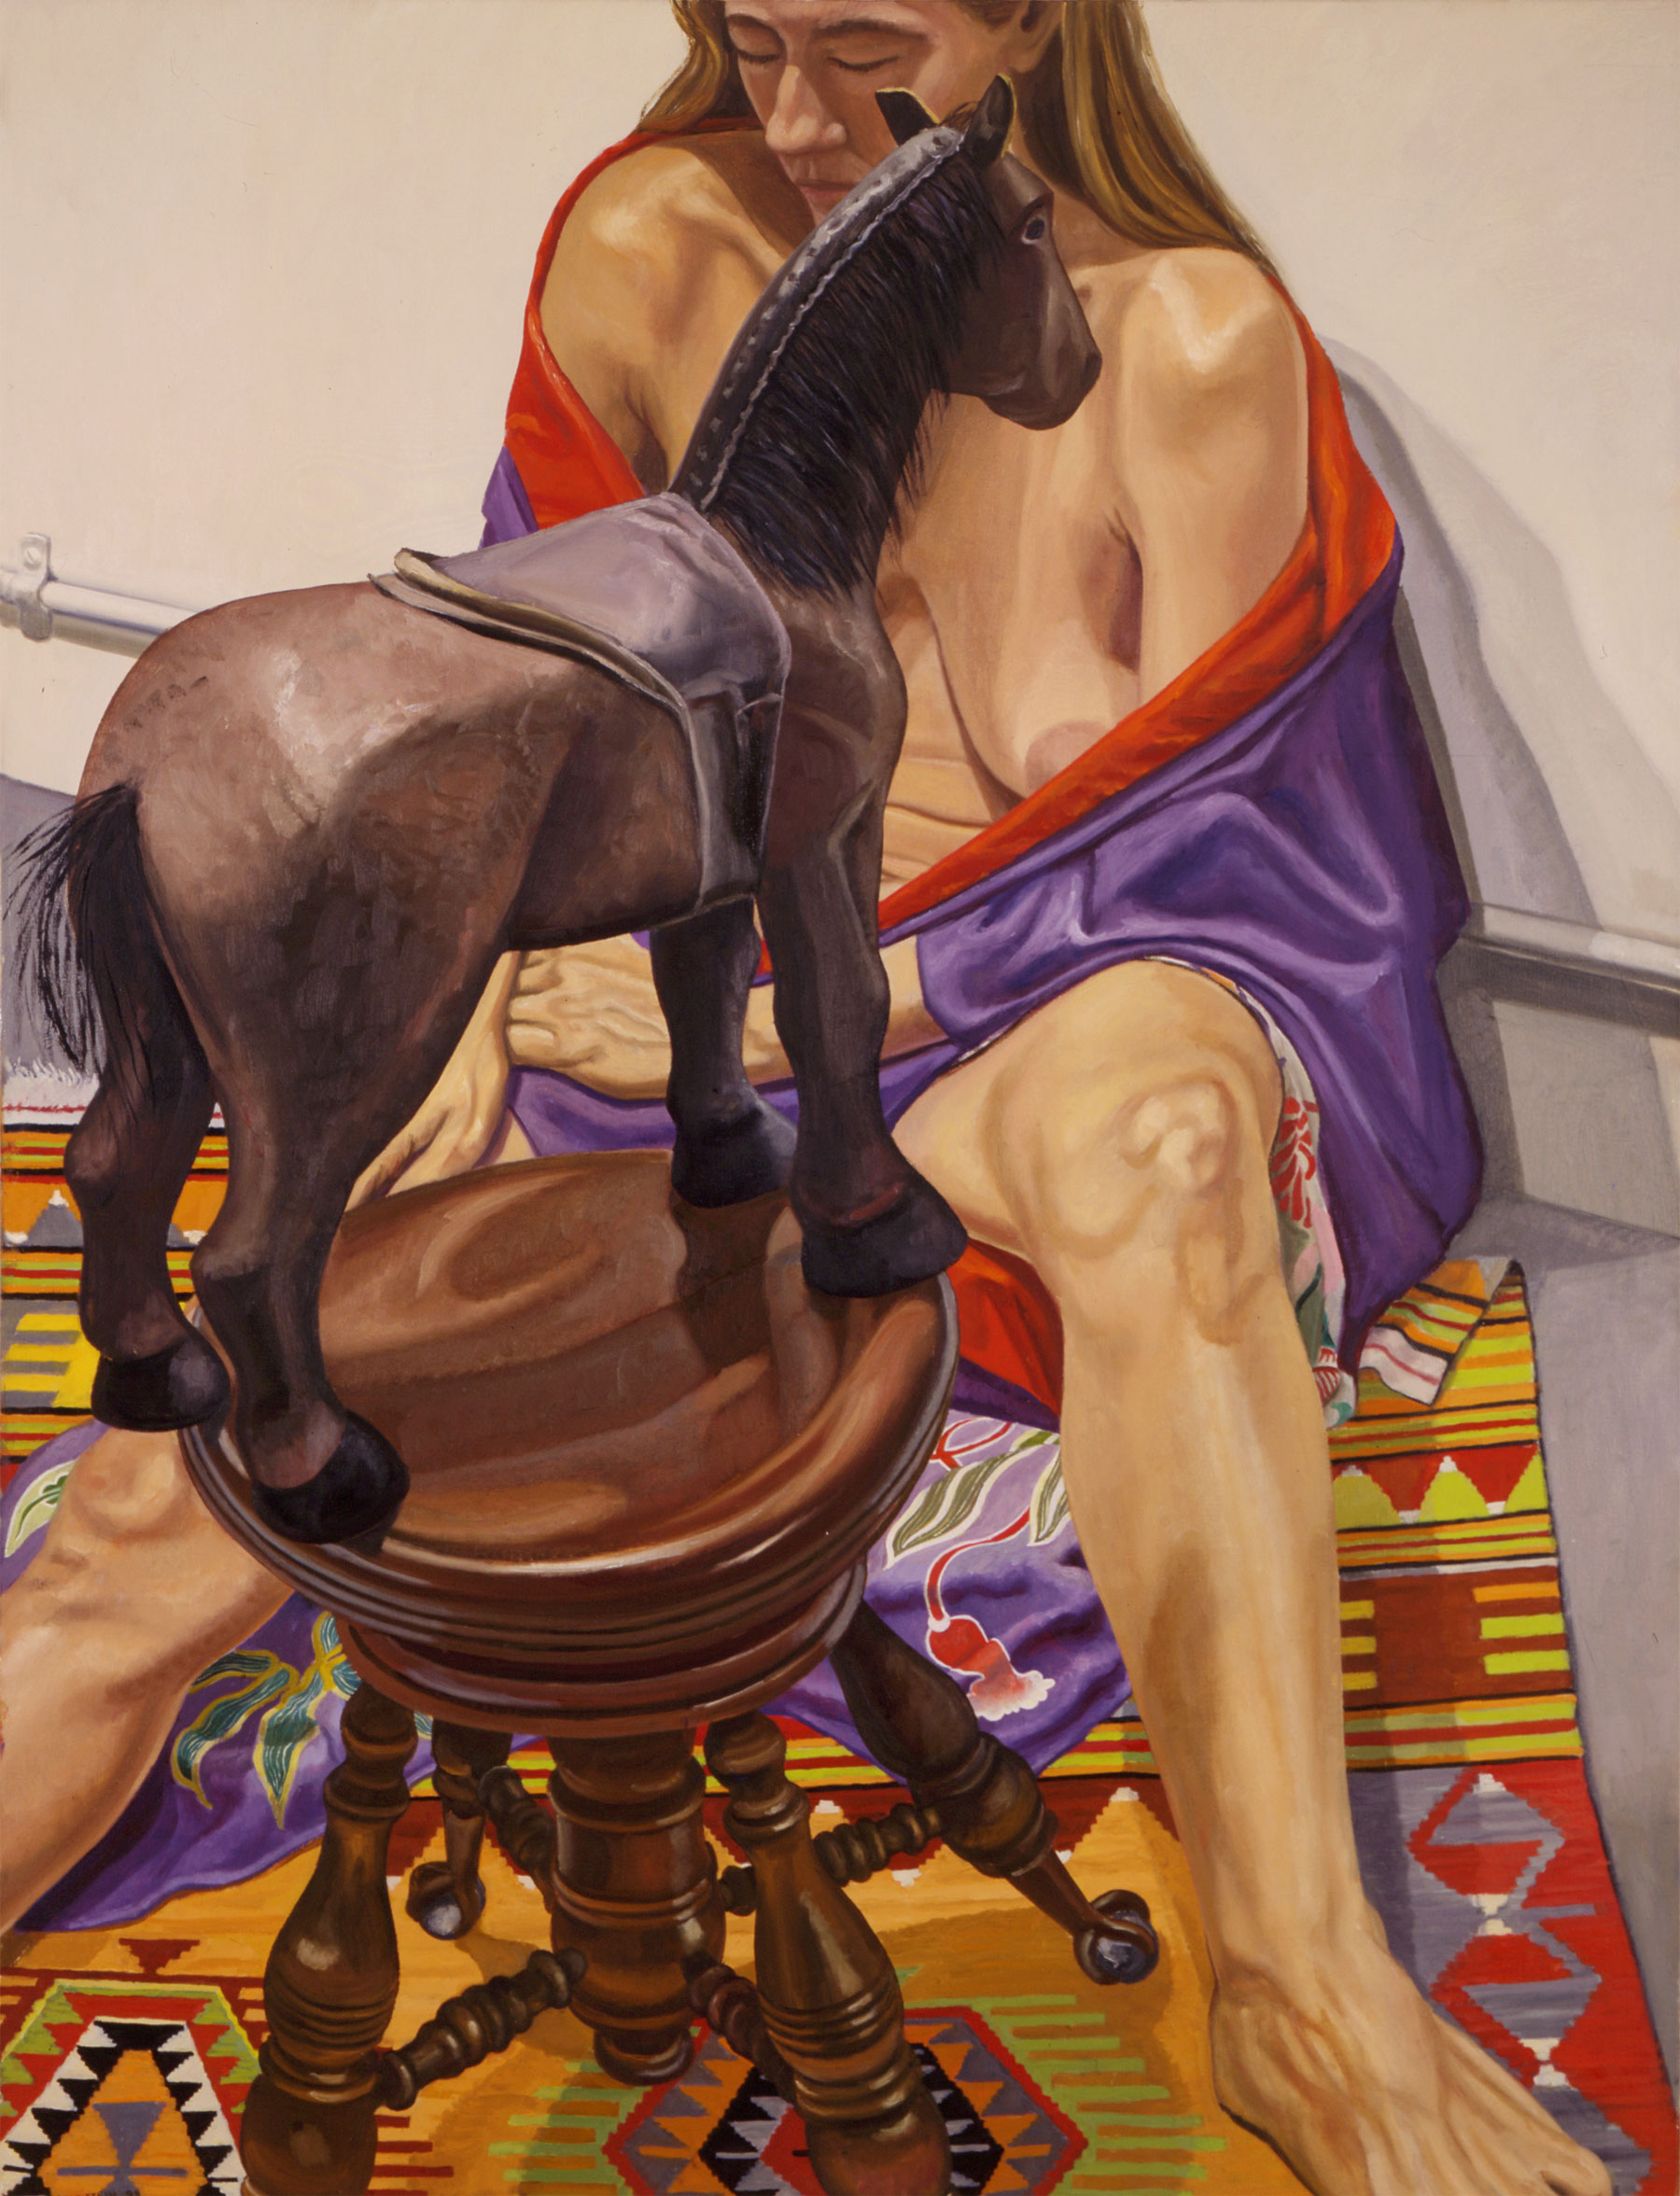 Nude in Kimono with Folk Art Horse on Piano    Stool   ,   1998   Oil on canvas   48 x 36 inches